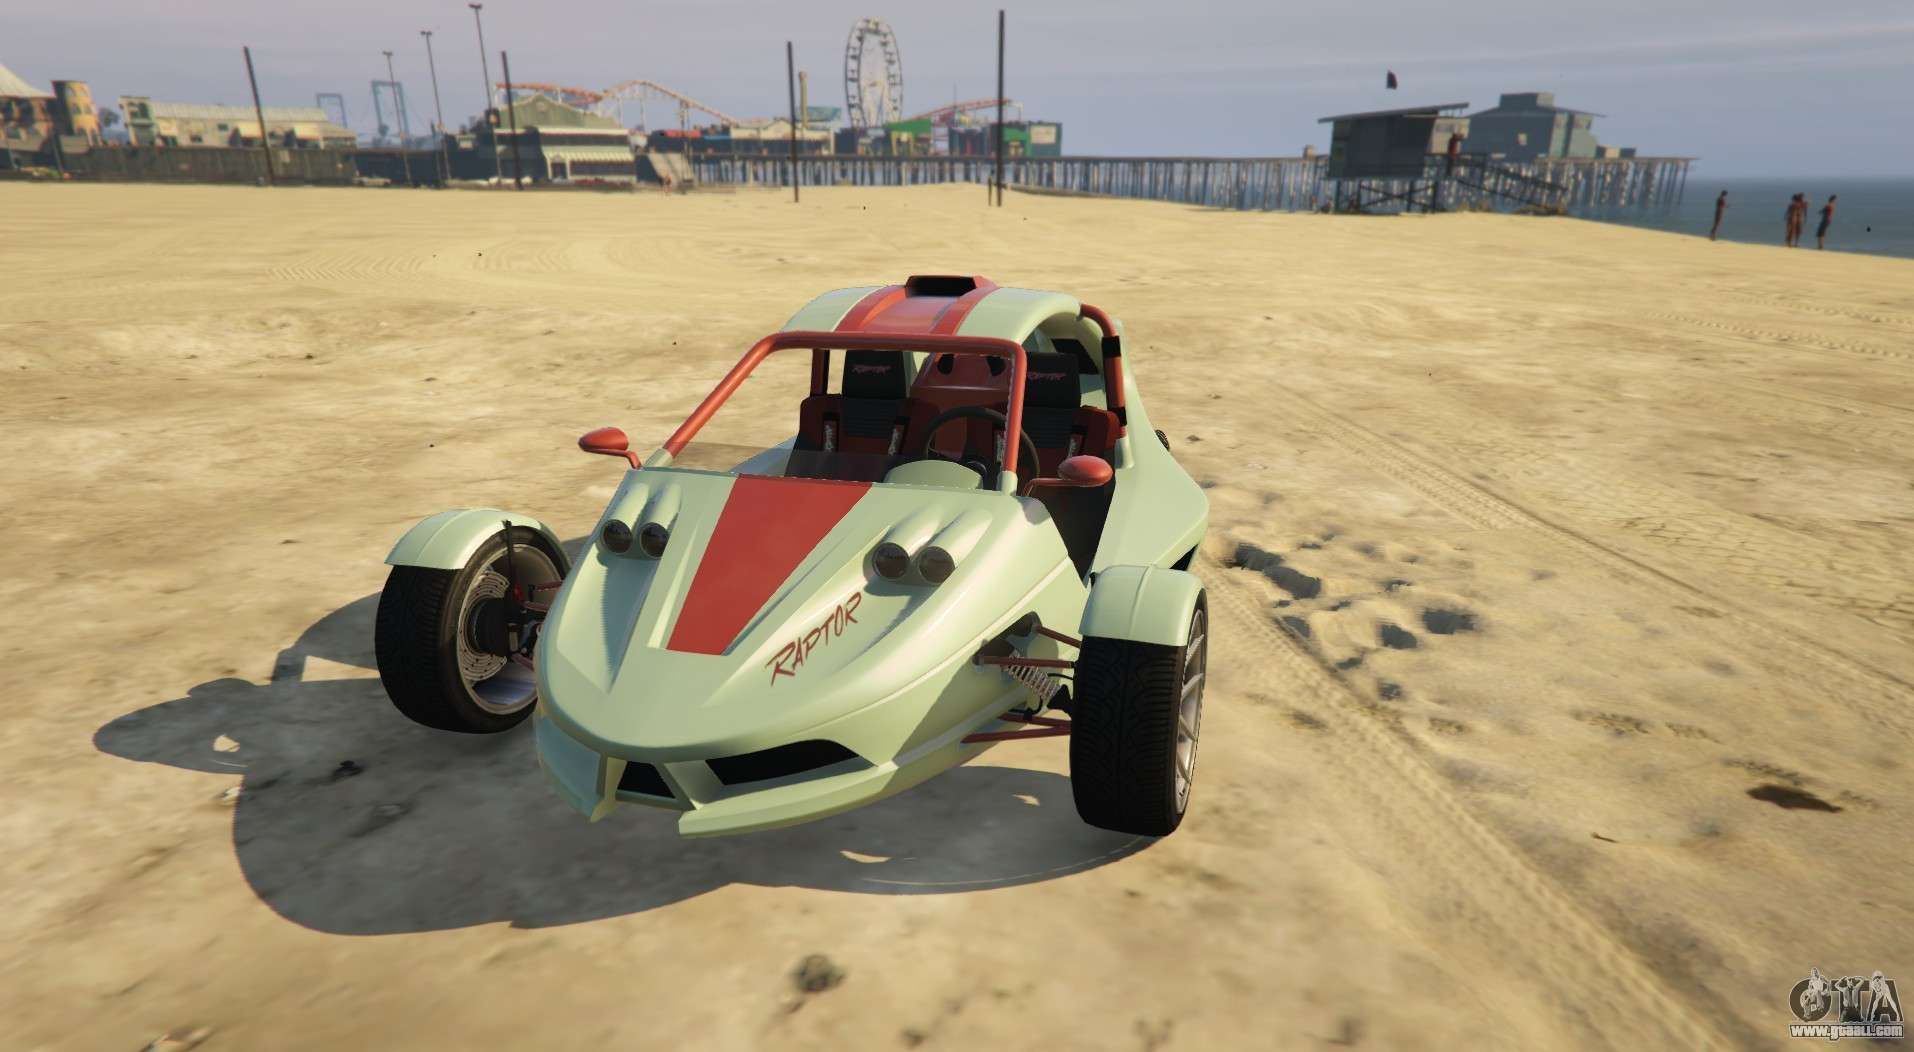 Original tricycle from GTA 5 BF Raptor